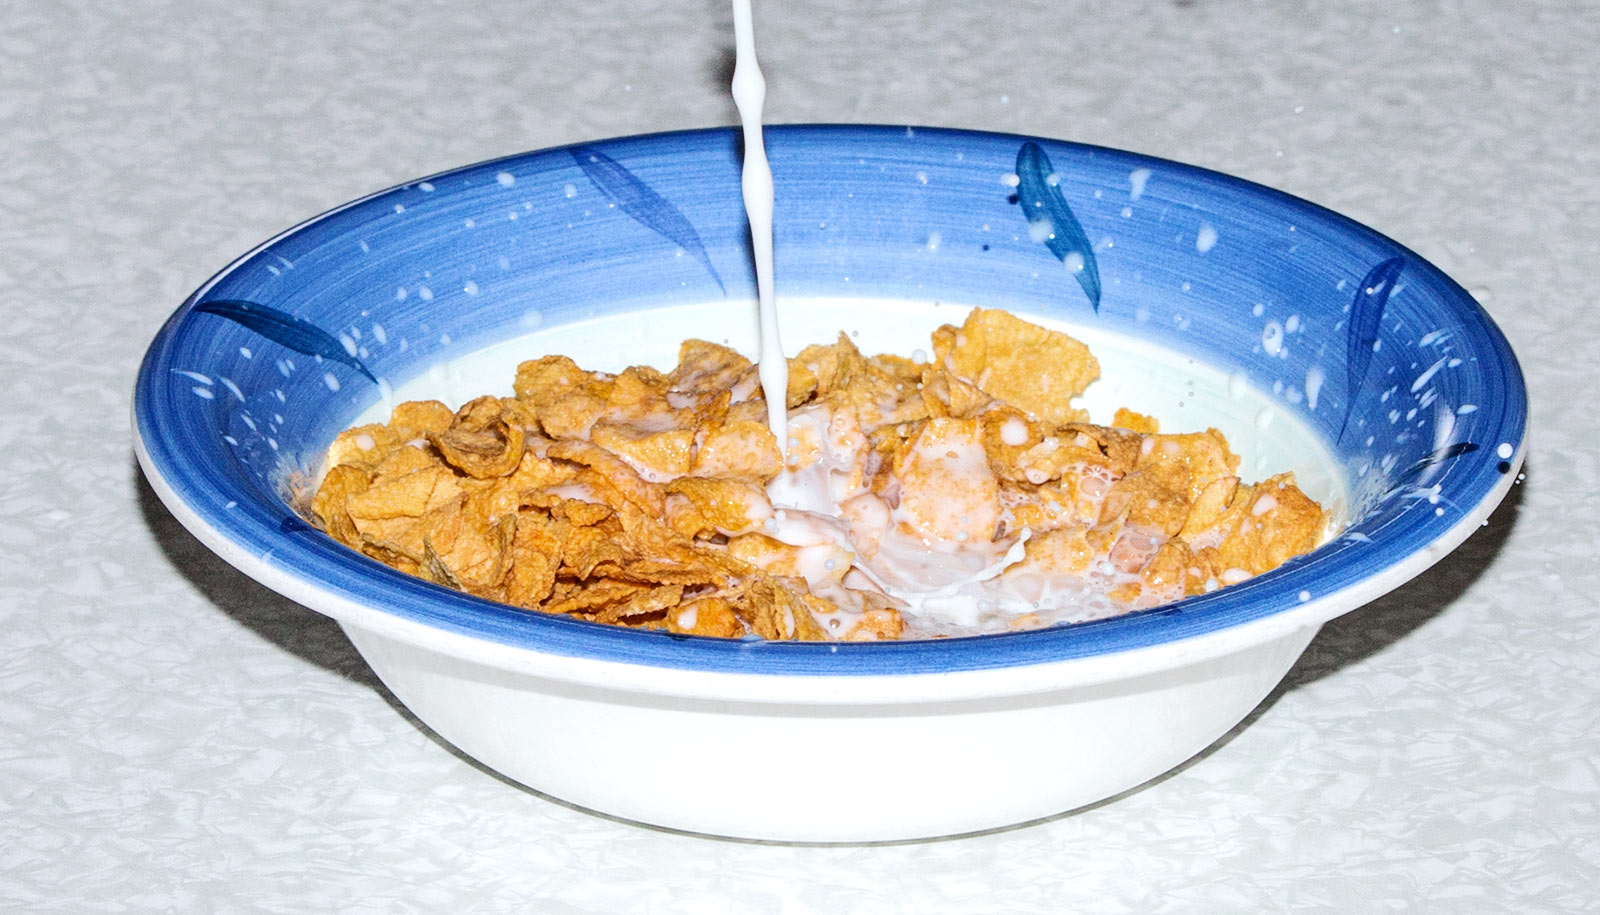 After cereal, even healthy people's blood sugar spikes